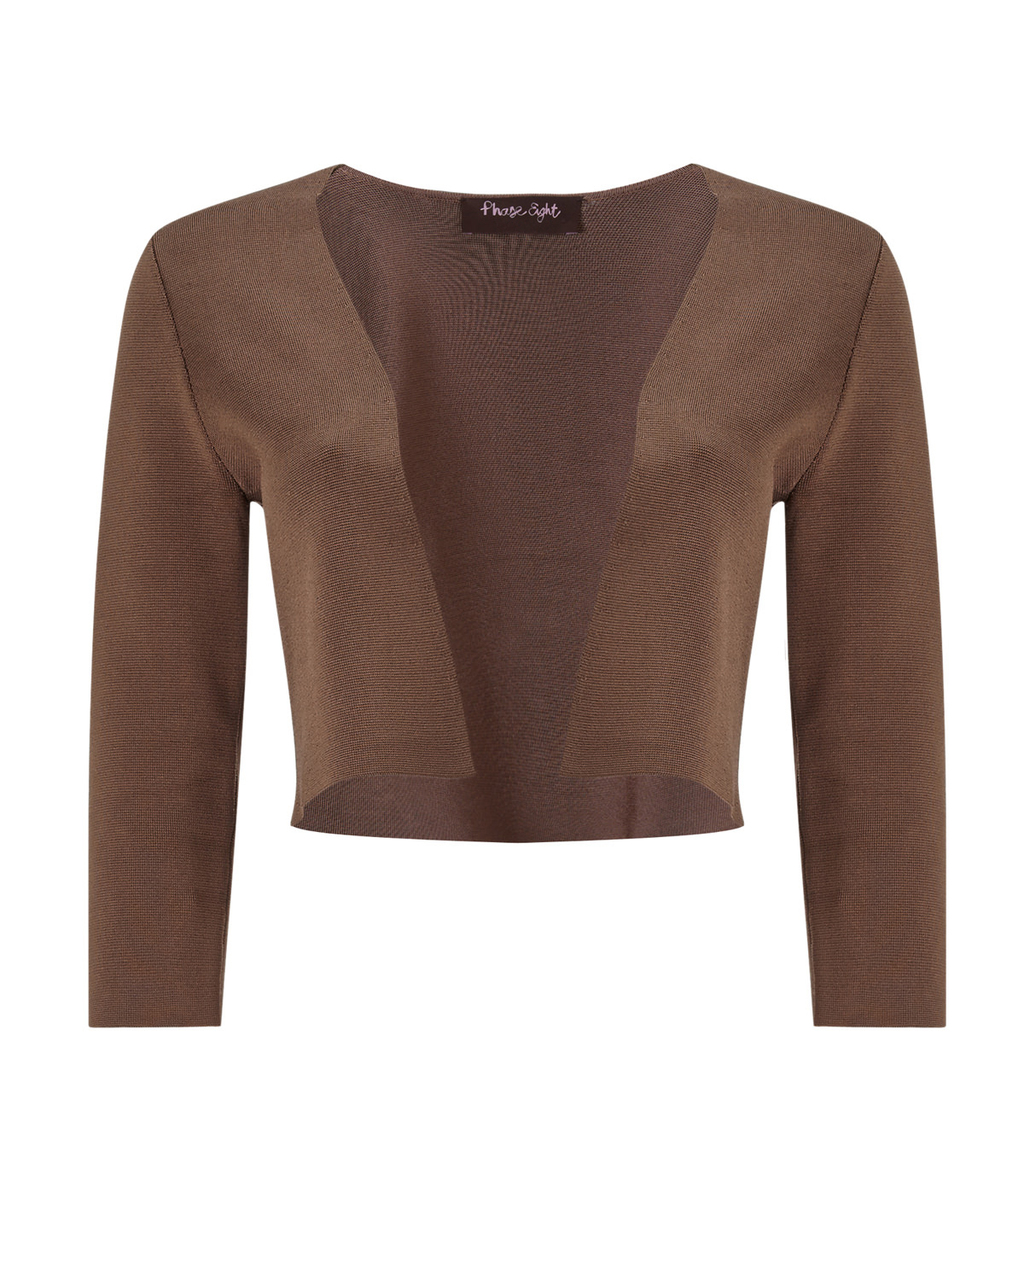 Salma Knit Jacket - pattern: plain; style: bolero/shrug; collar: round collar/collarless; predominant colour: taupe; occasions: evening; fit: straight cut (boxy); fibres: viscose/rayon - stretch; sleeve length: 3/4 length; sleeve style: standard; texture group: knits/crochet; collar break: low/open; pattern type: knitted - other; length: cropped; season: a/w 2015; wardrobe: event